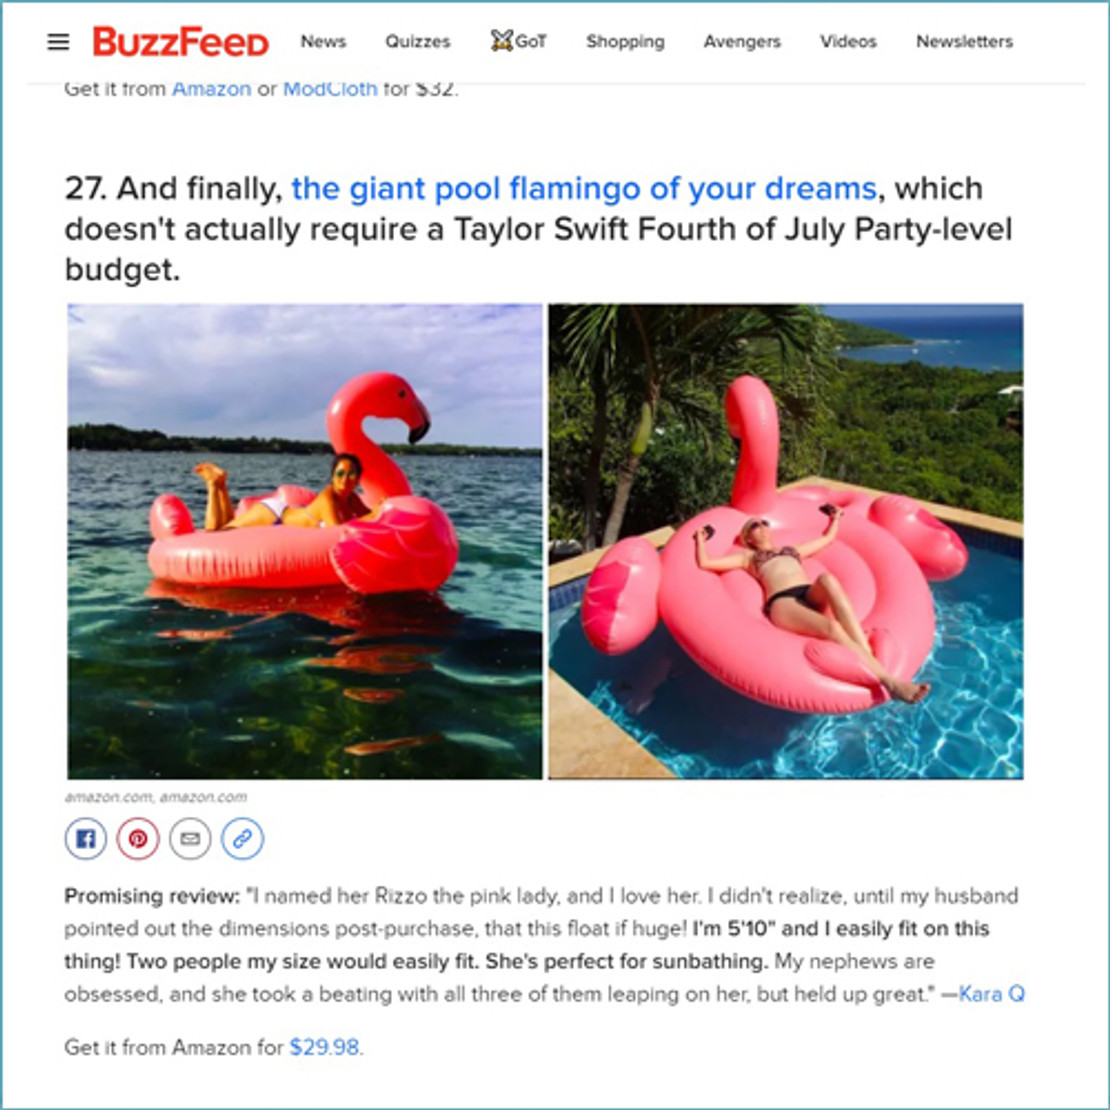 5/16/2019 - The Intex Mega Flamingo Island was Mentioned in BuzzFeed's Summer Shopping List